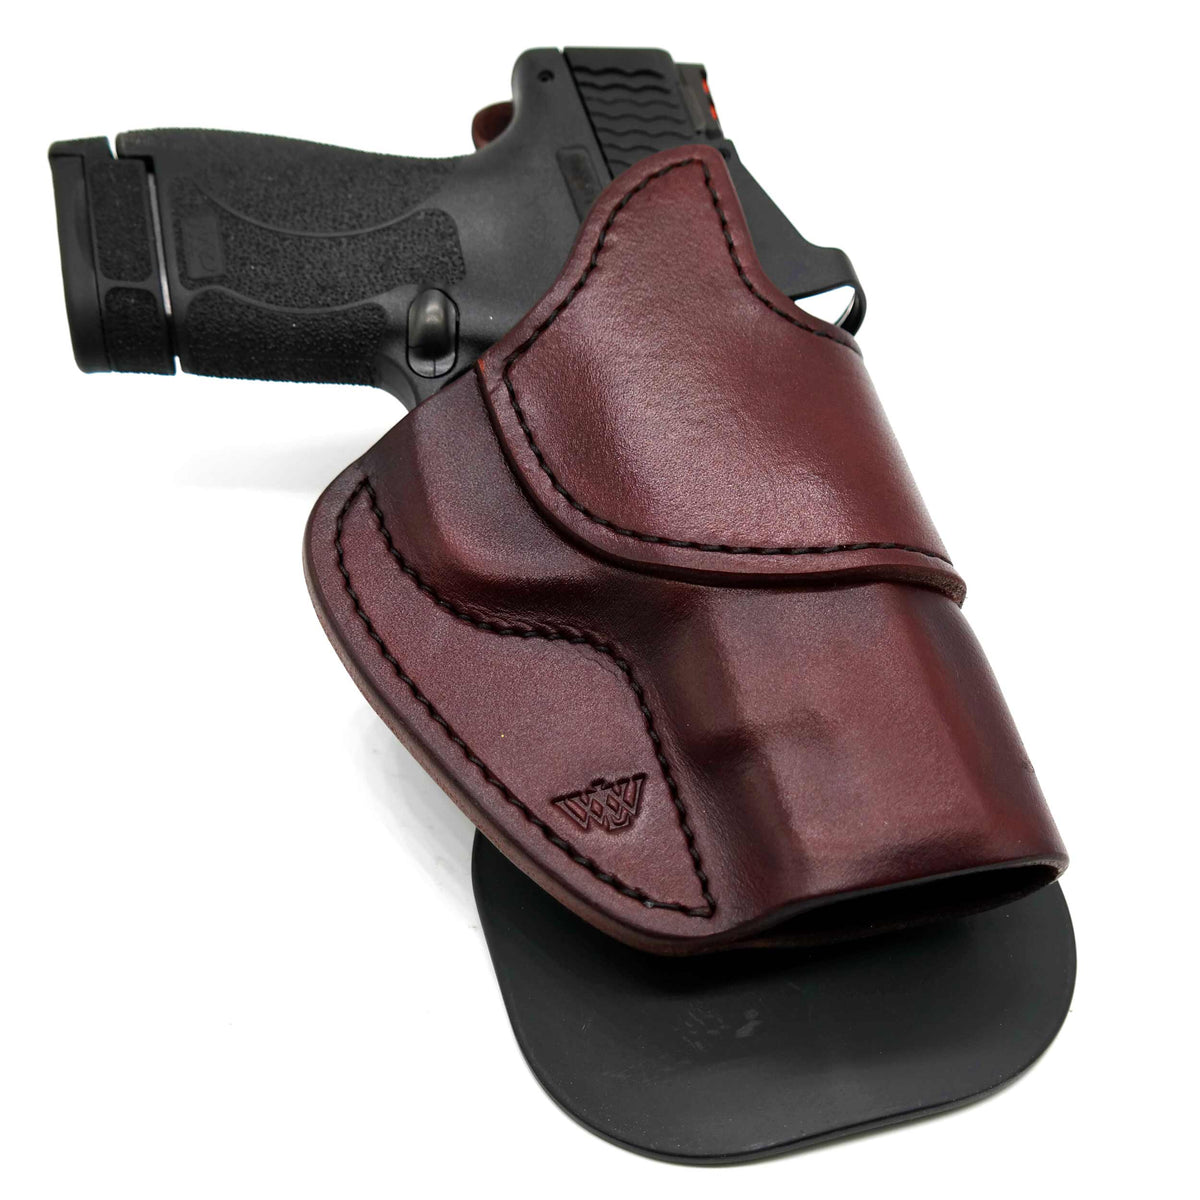 Outsider™ ROR Reflex-Optics-Ready Paddle Holster